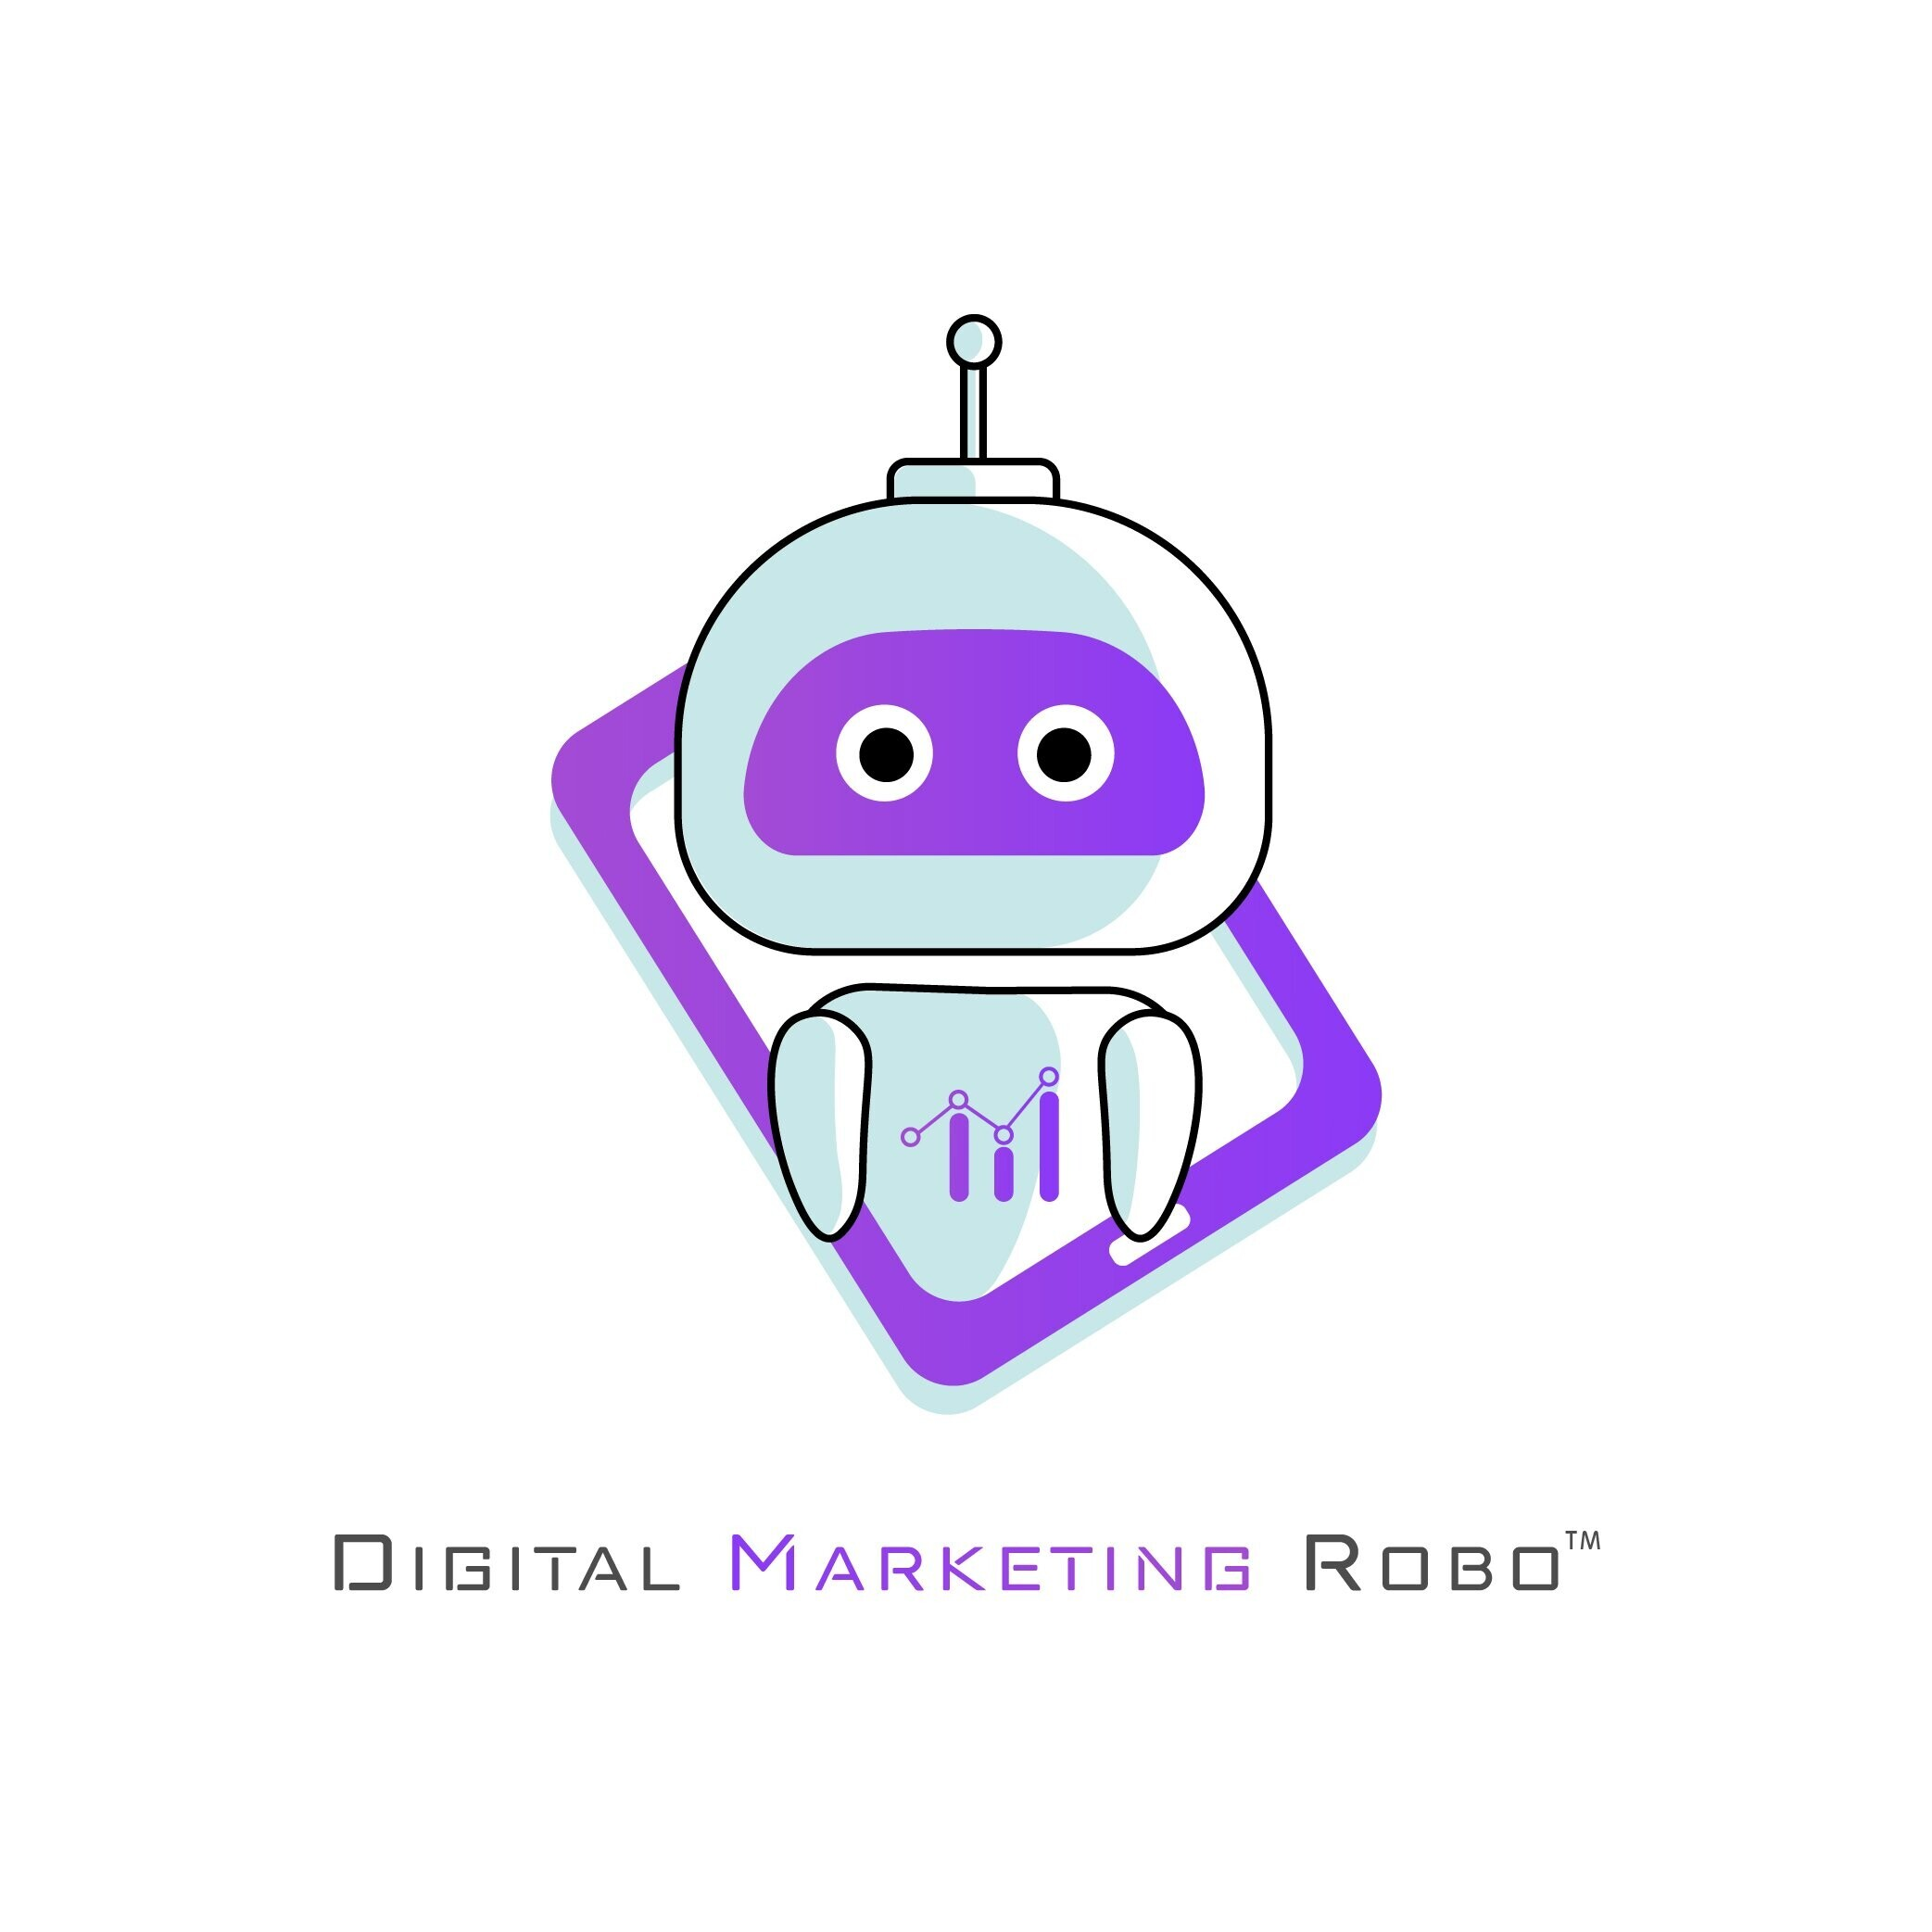 Digital Marketing Robo